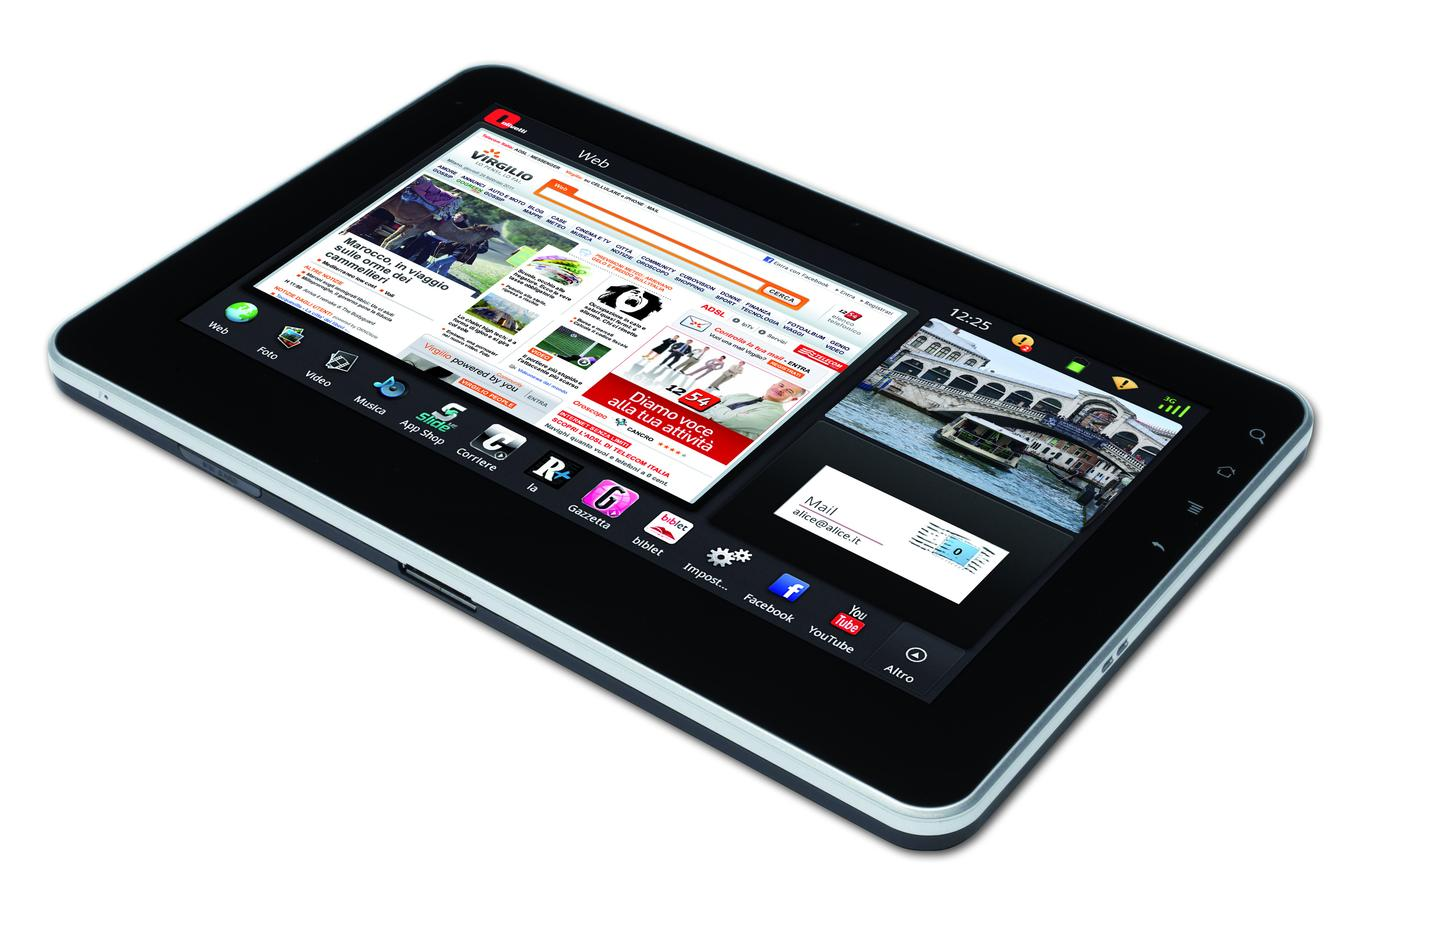 Olivetti has announced Italy's first entry into the tablet market - the Android-based OliPad 100